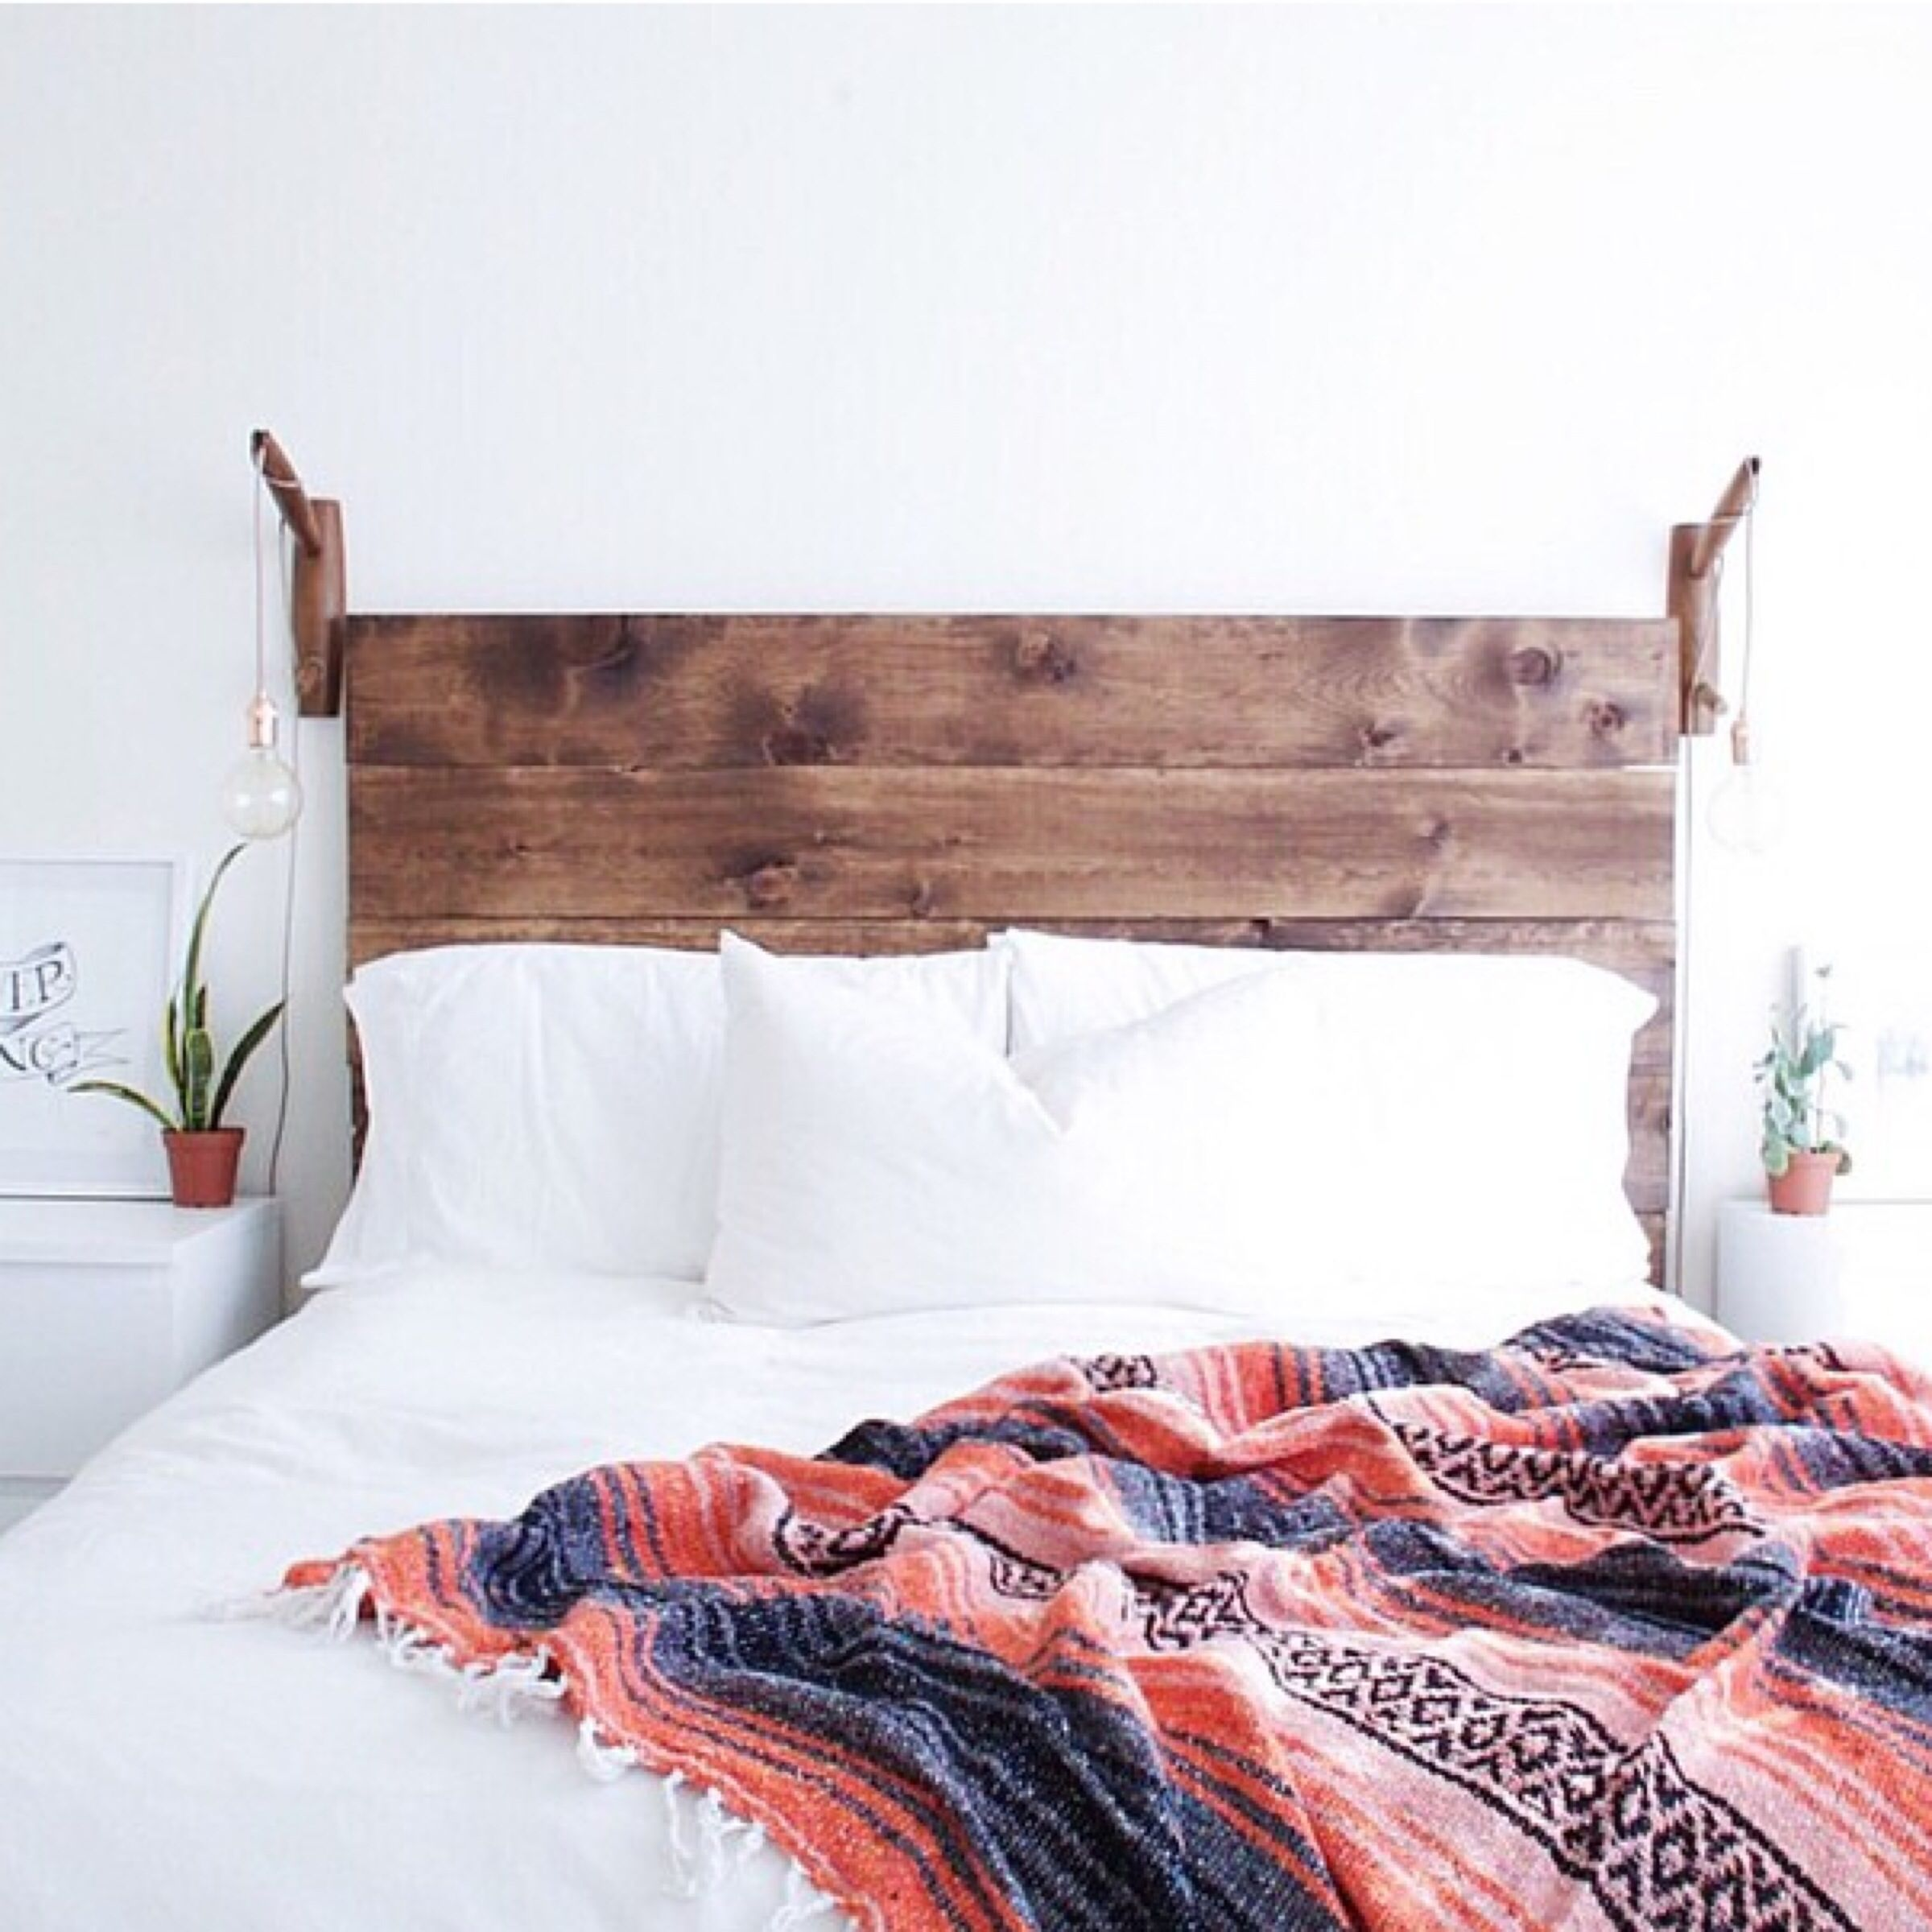 blogs bold news designs rwww ideas diy headboard wood barringtonhomes bedroom stikwood walls real